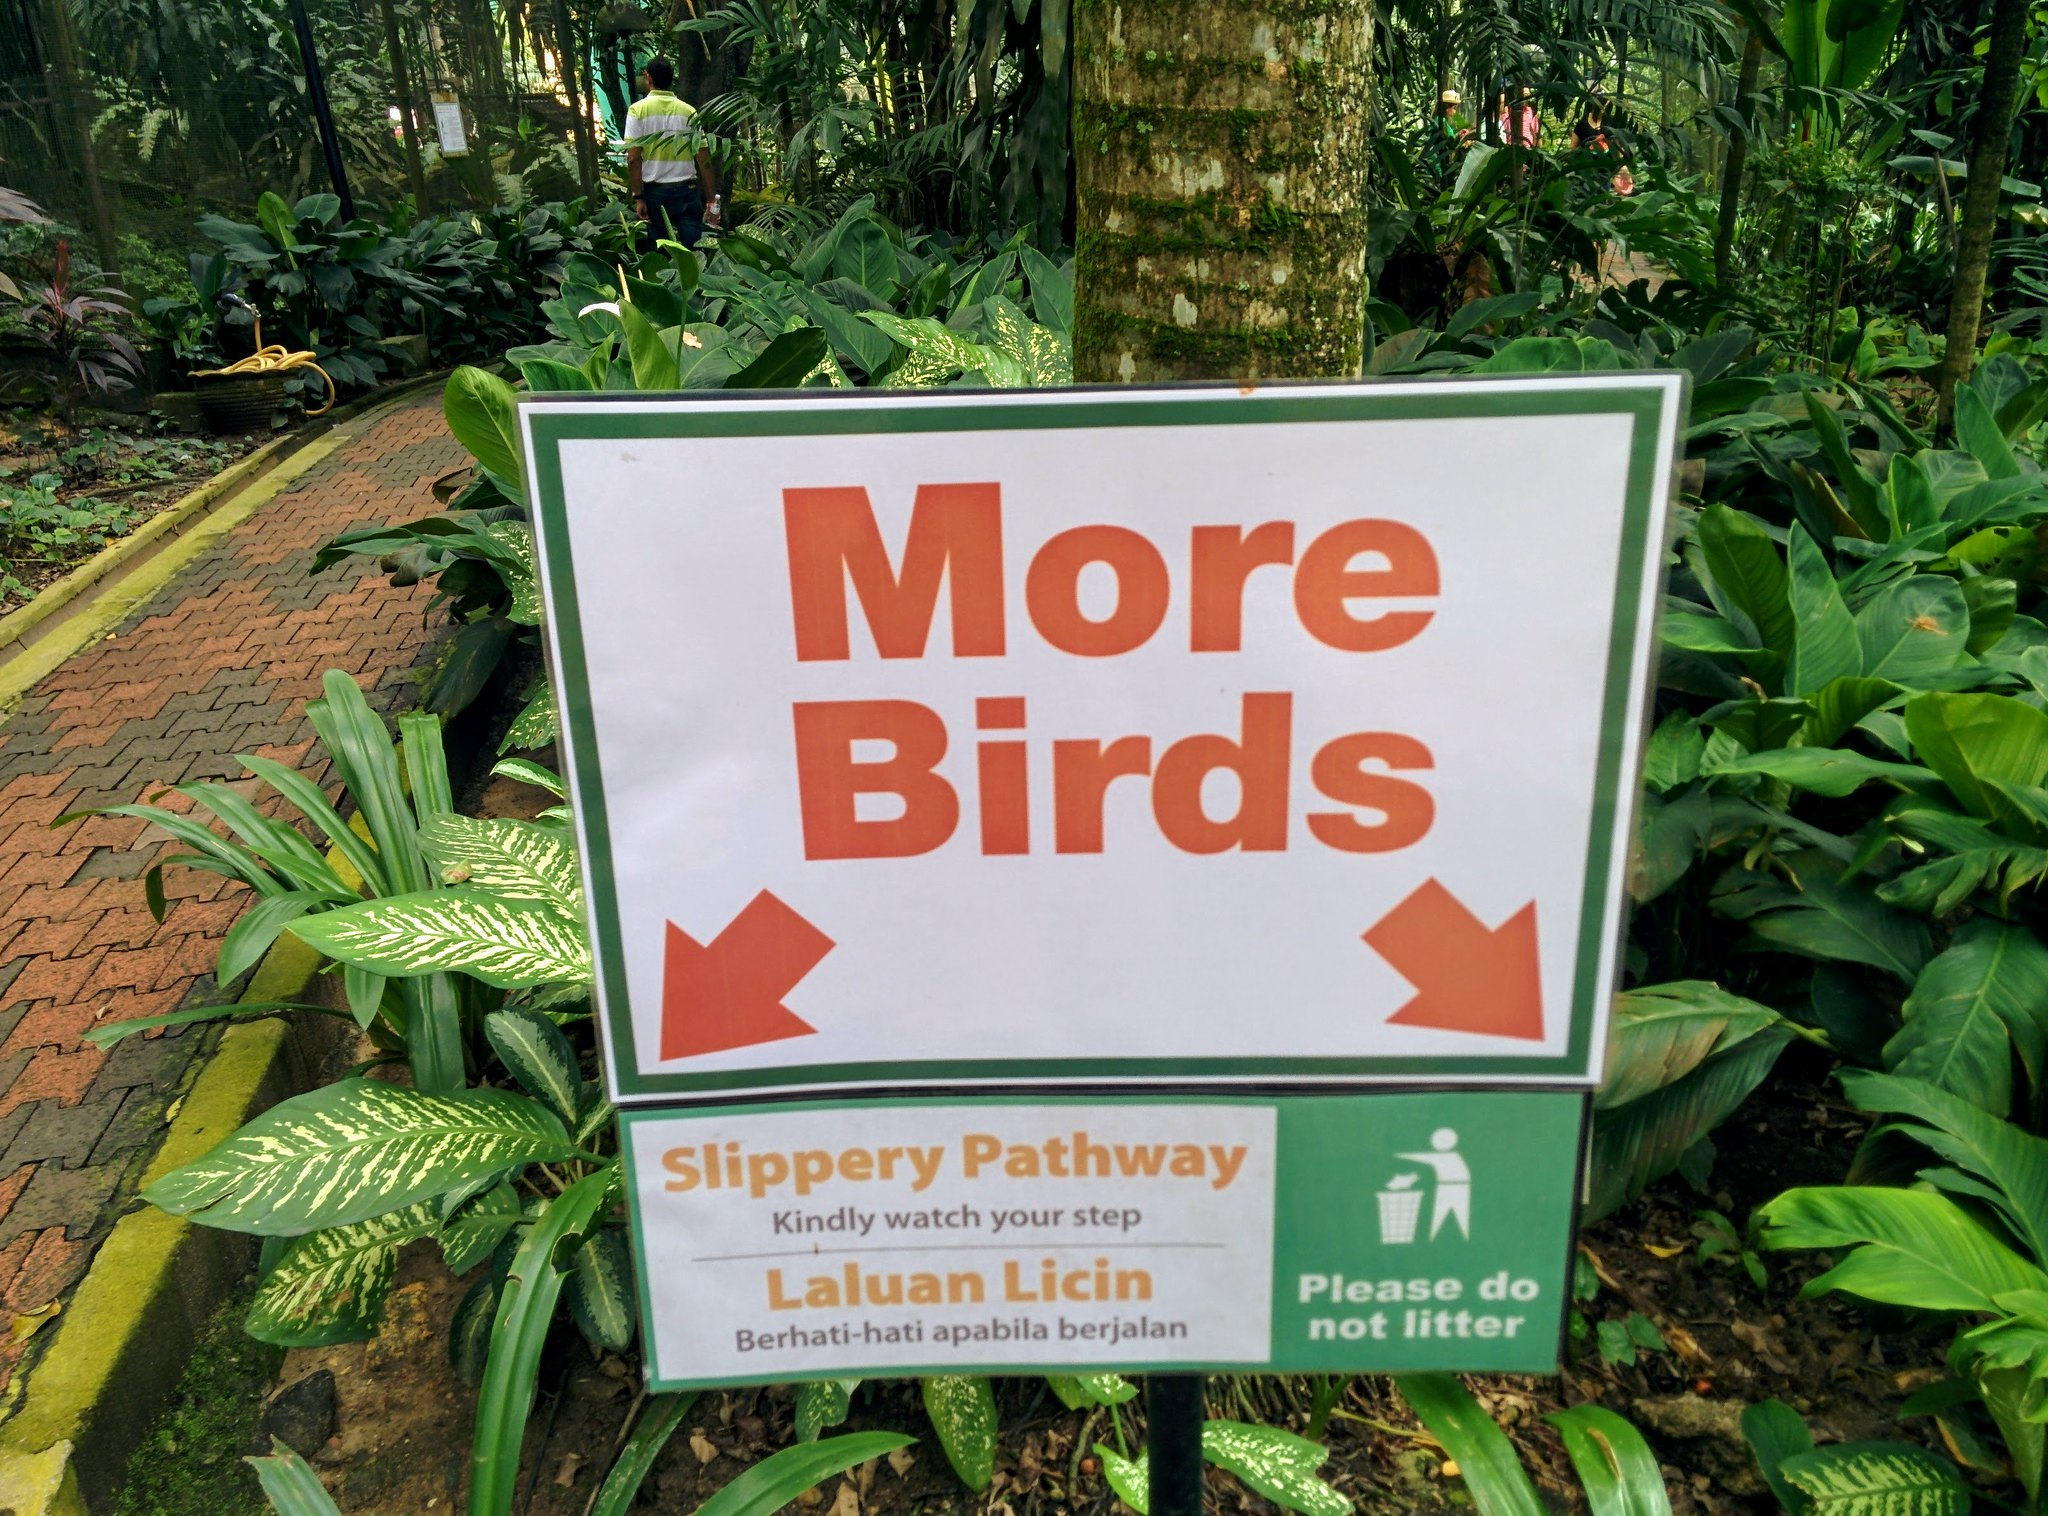 A sign in the bird park